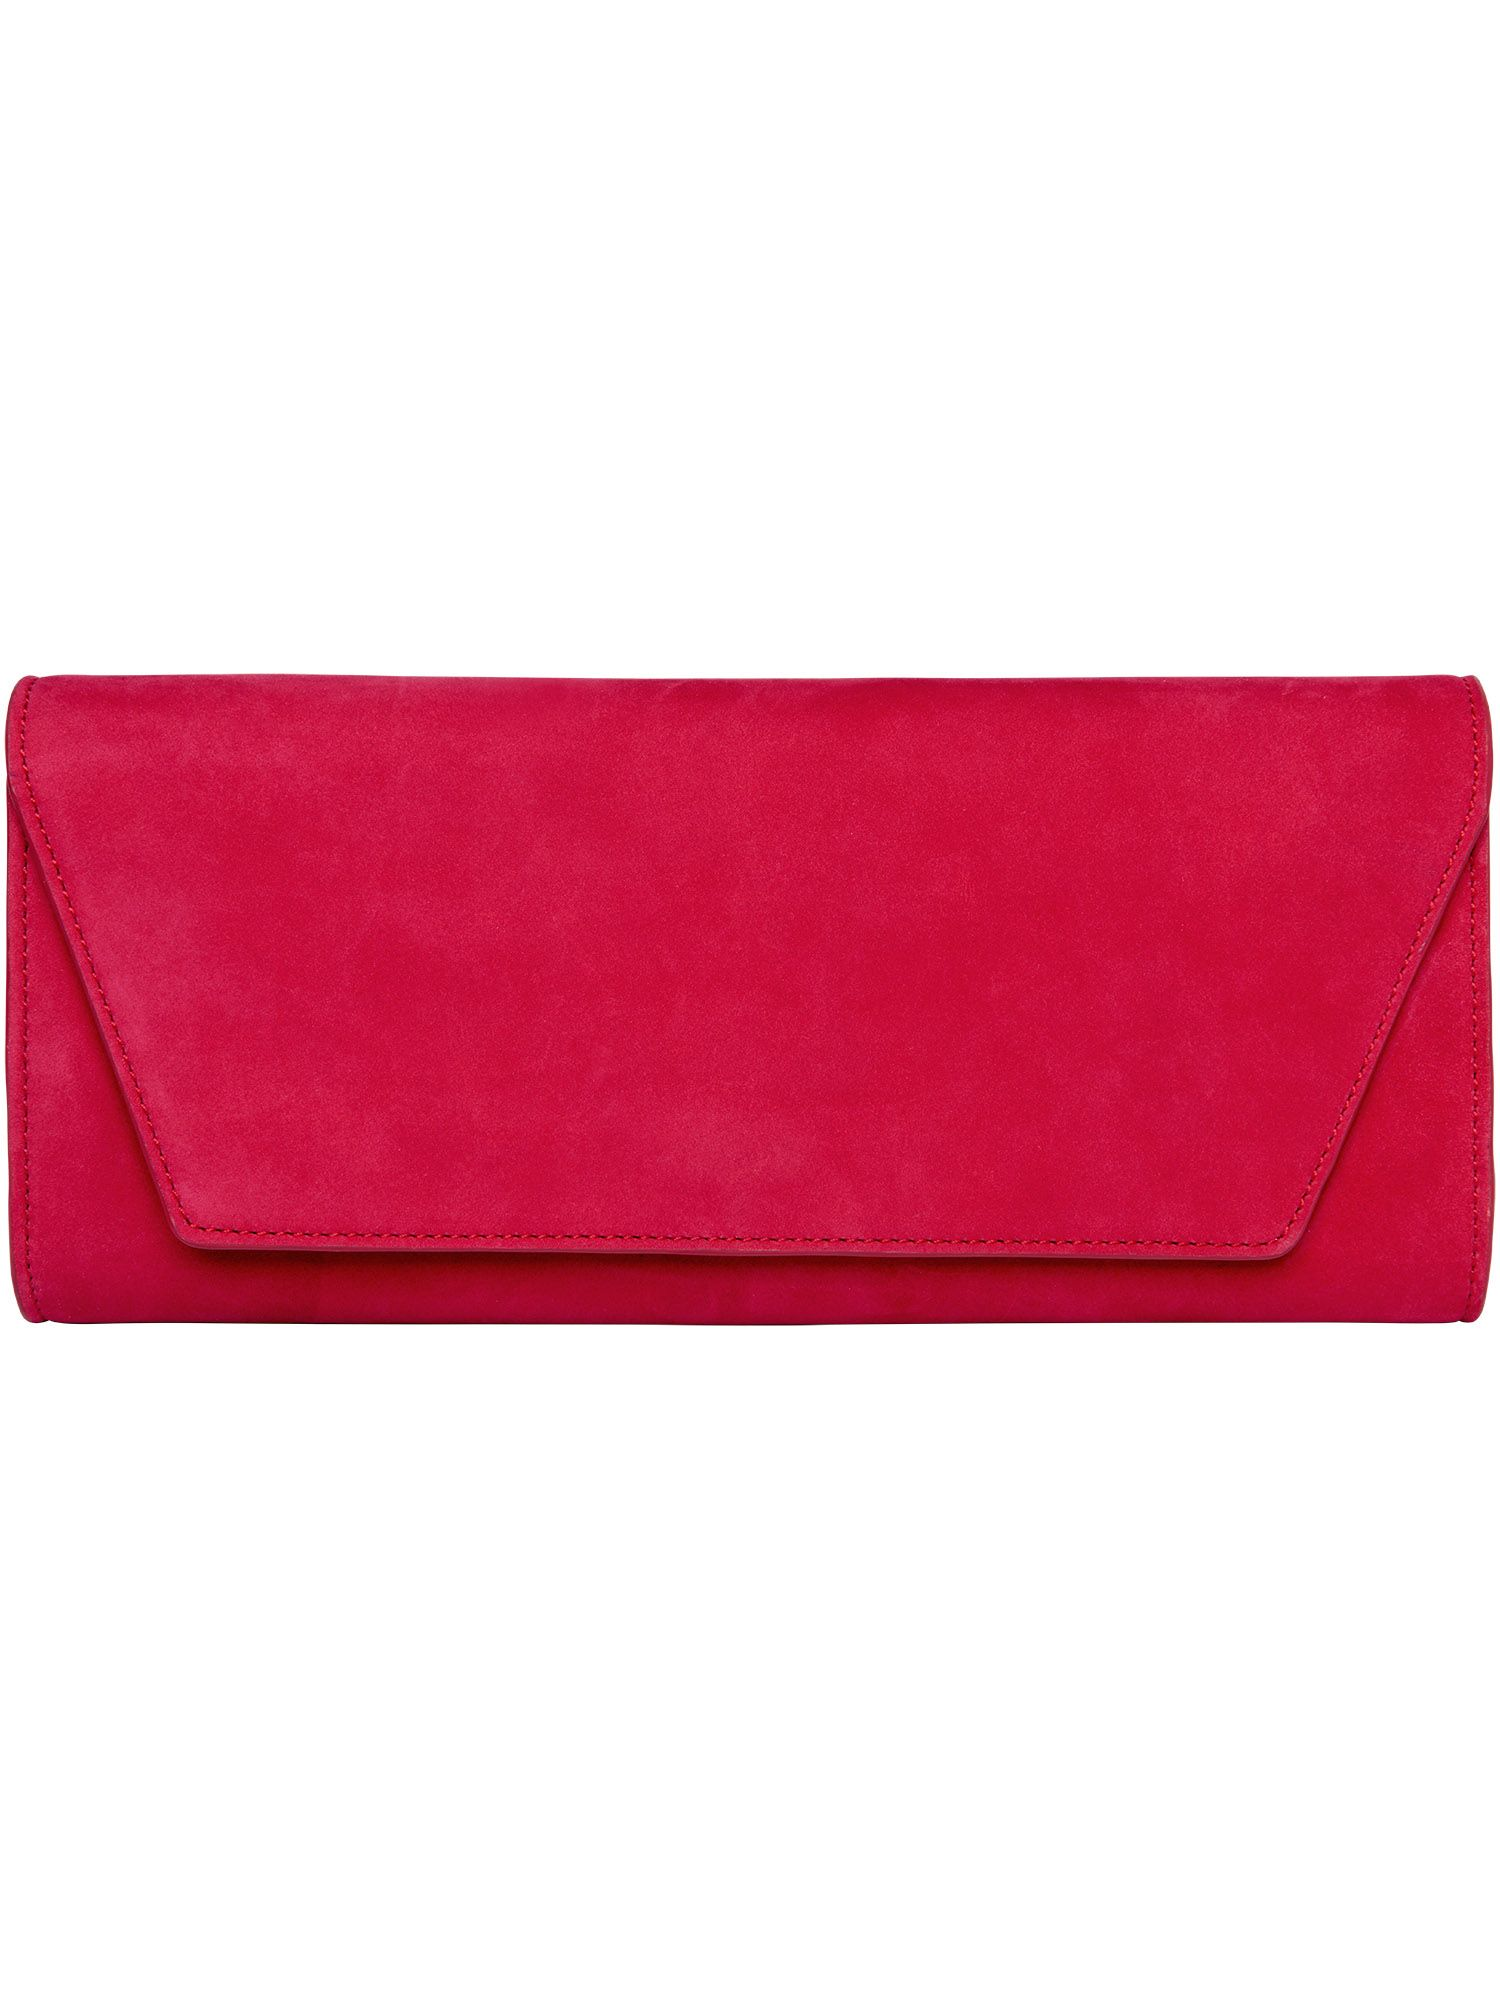 Carey suede clutch bag